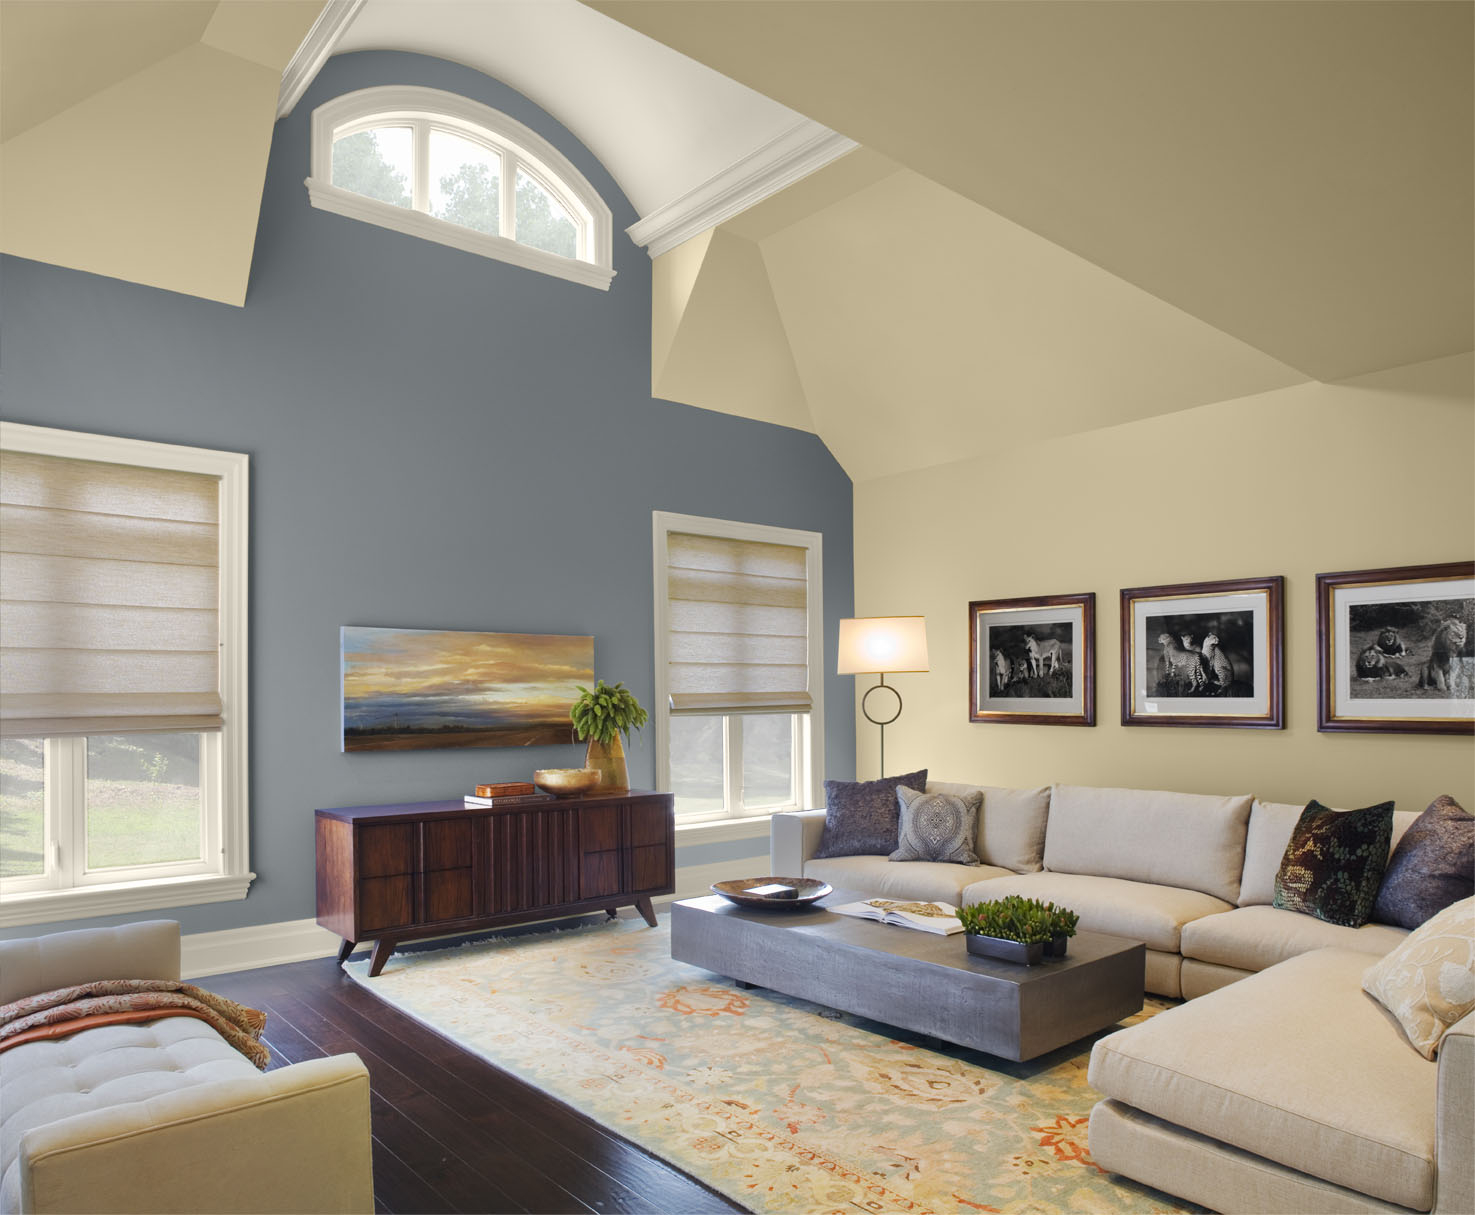 30 excellent living room paint color ideas slodive What is the best color for living room walls